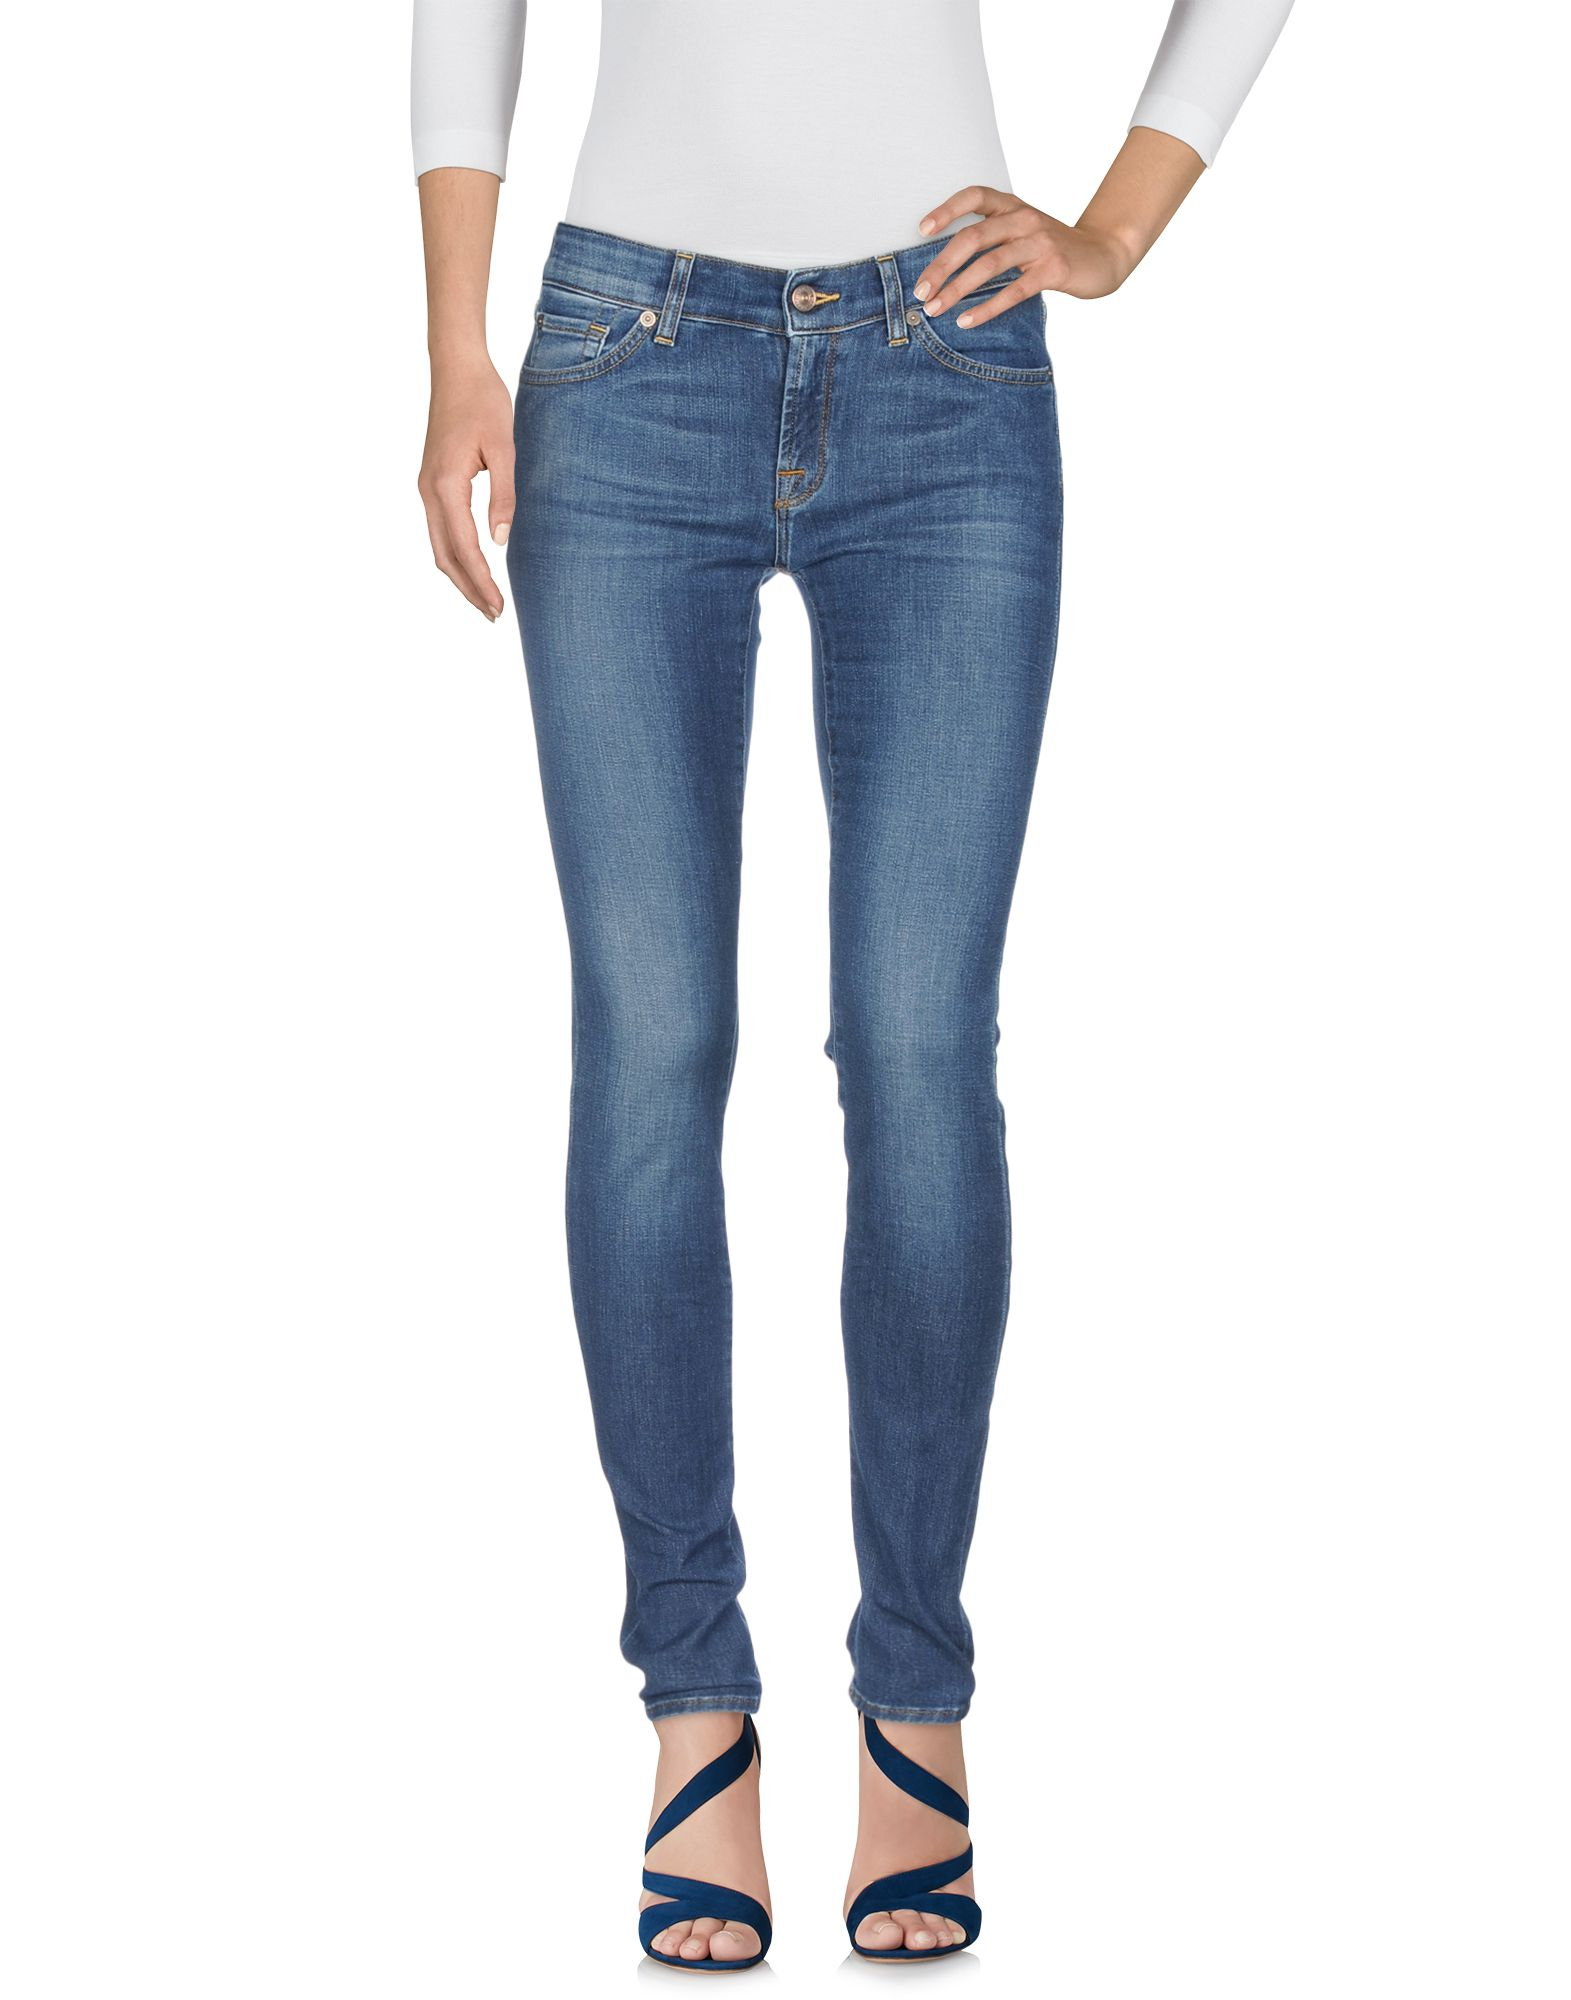 Pantaloni Jeans 7 For All Mankind Donna - Acquista online su ufOZ68